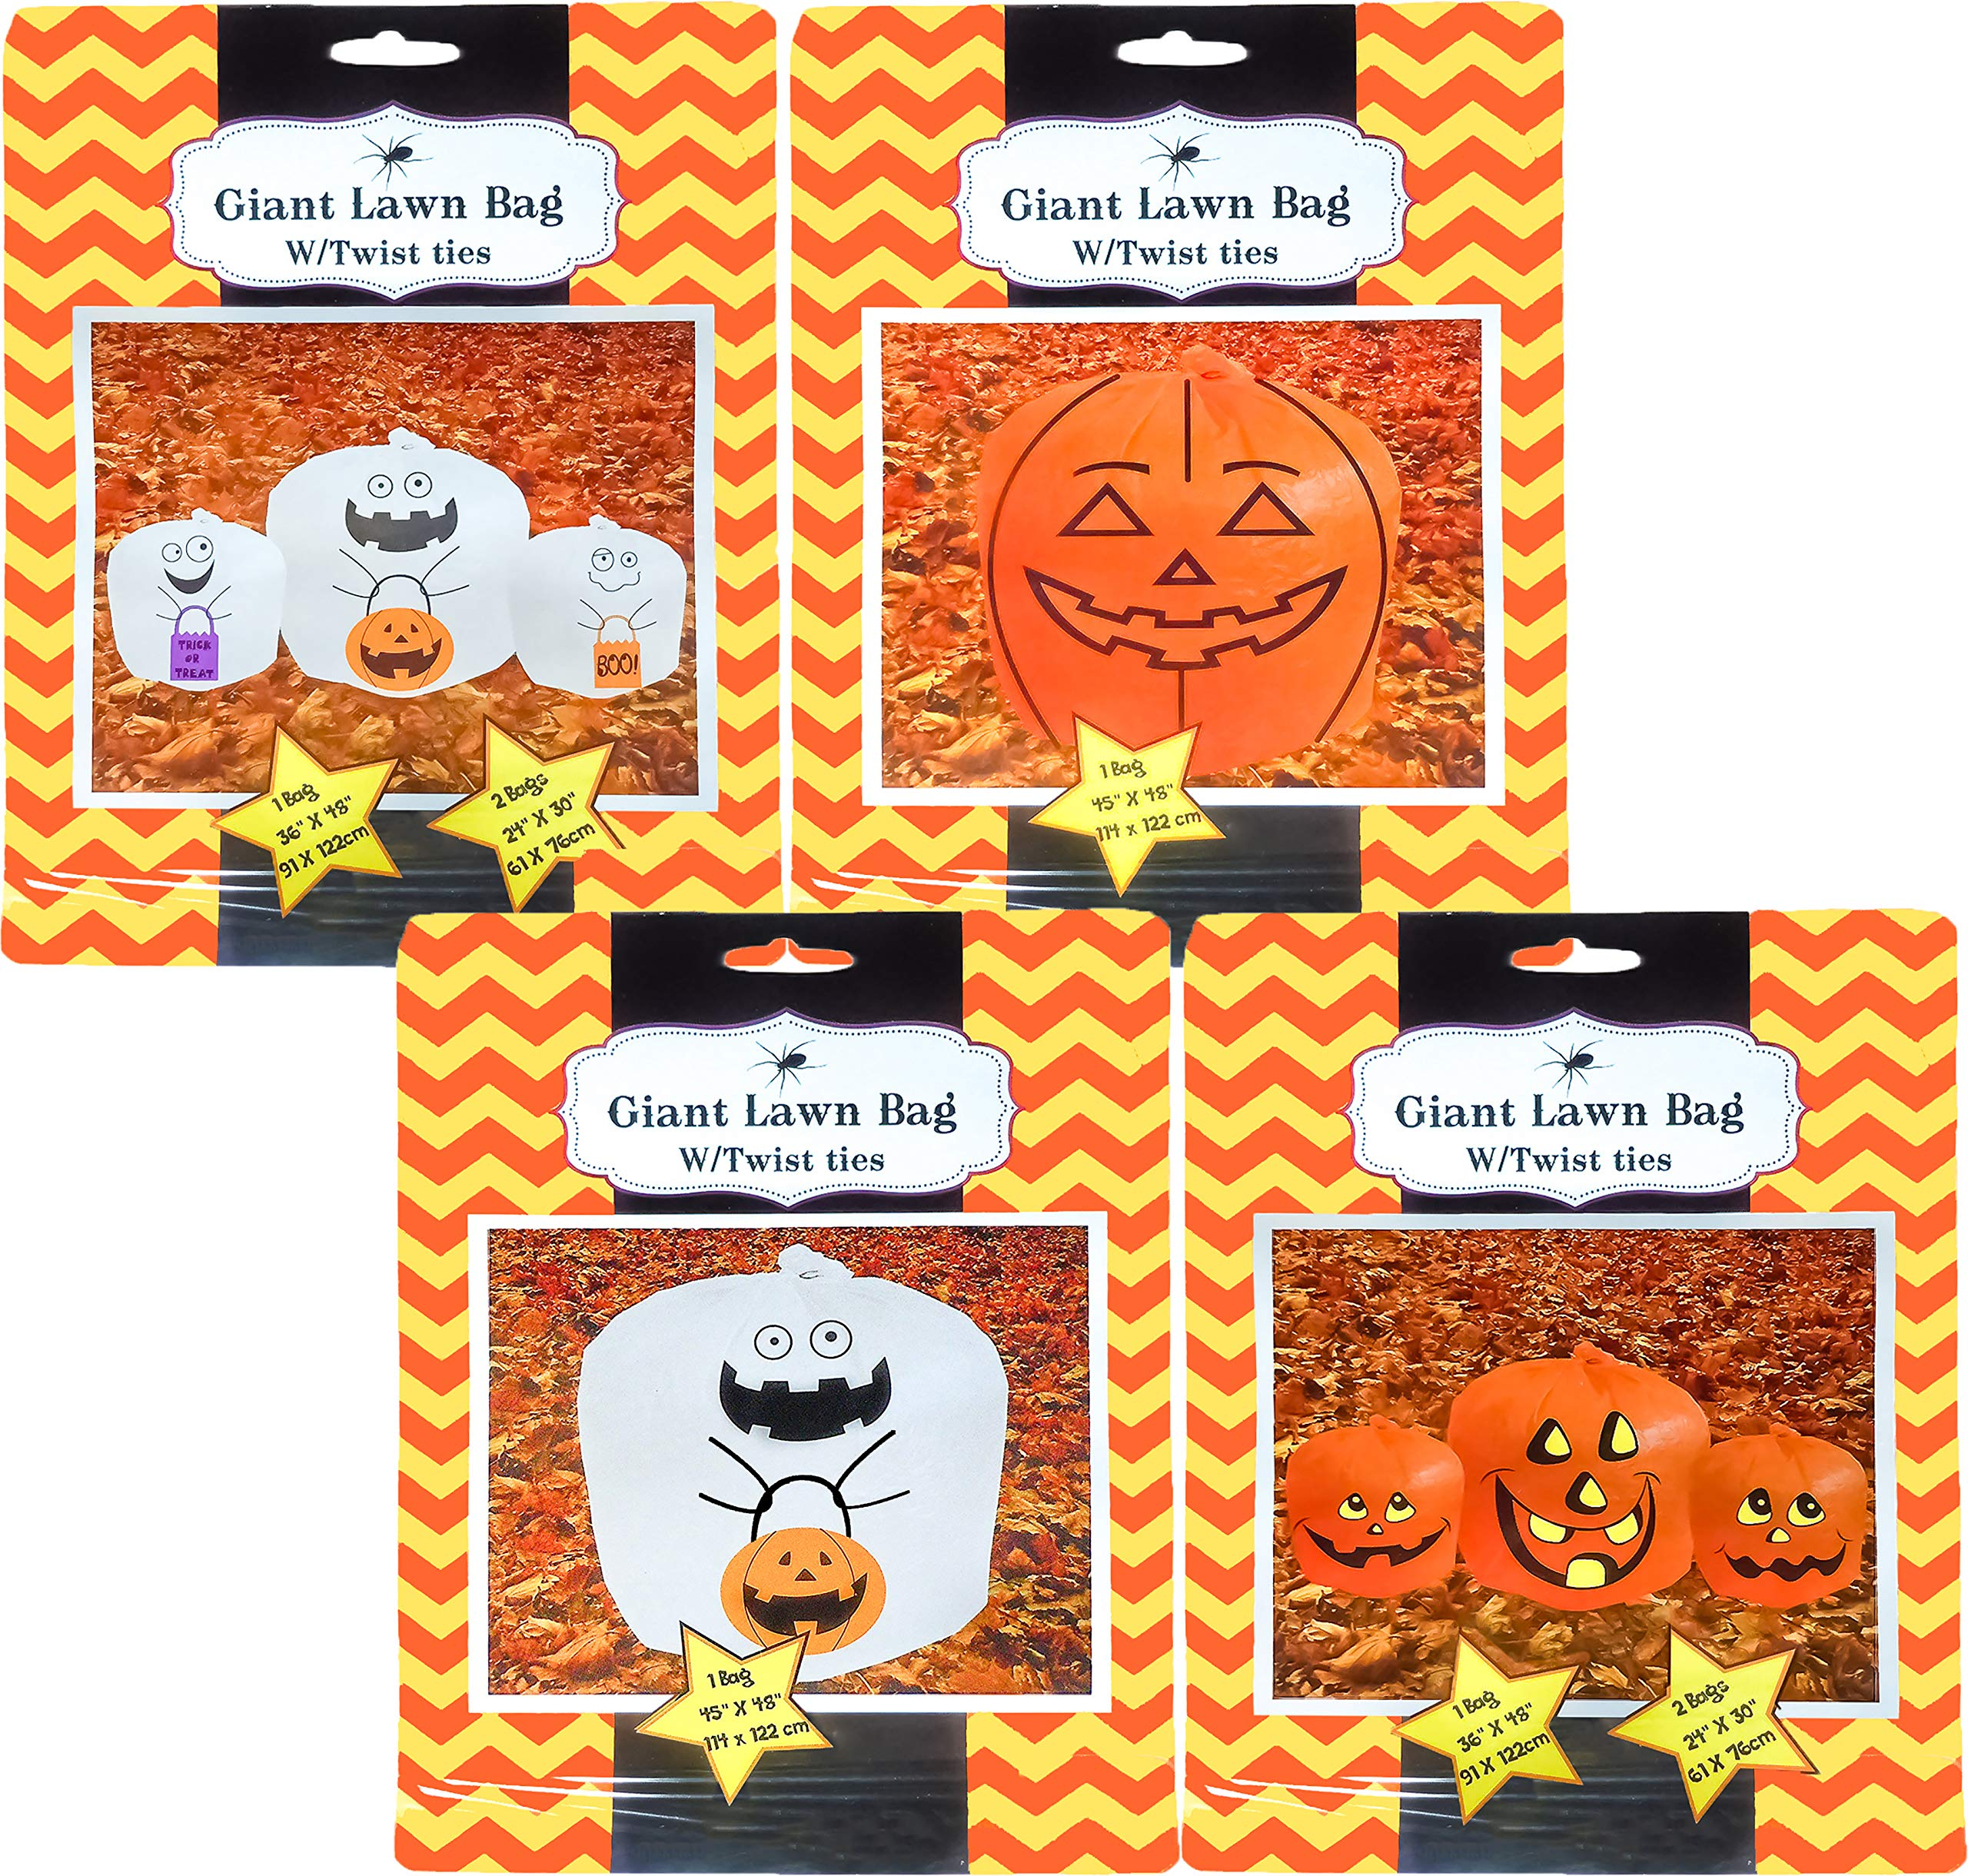 Set Of 4 Halloween Decorative Giant Lawn Bags With Twist Ties (Pumpkin & Ghost) by Black Duck Deals